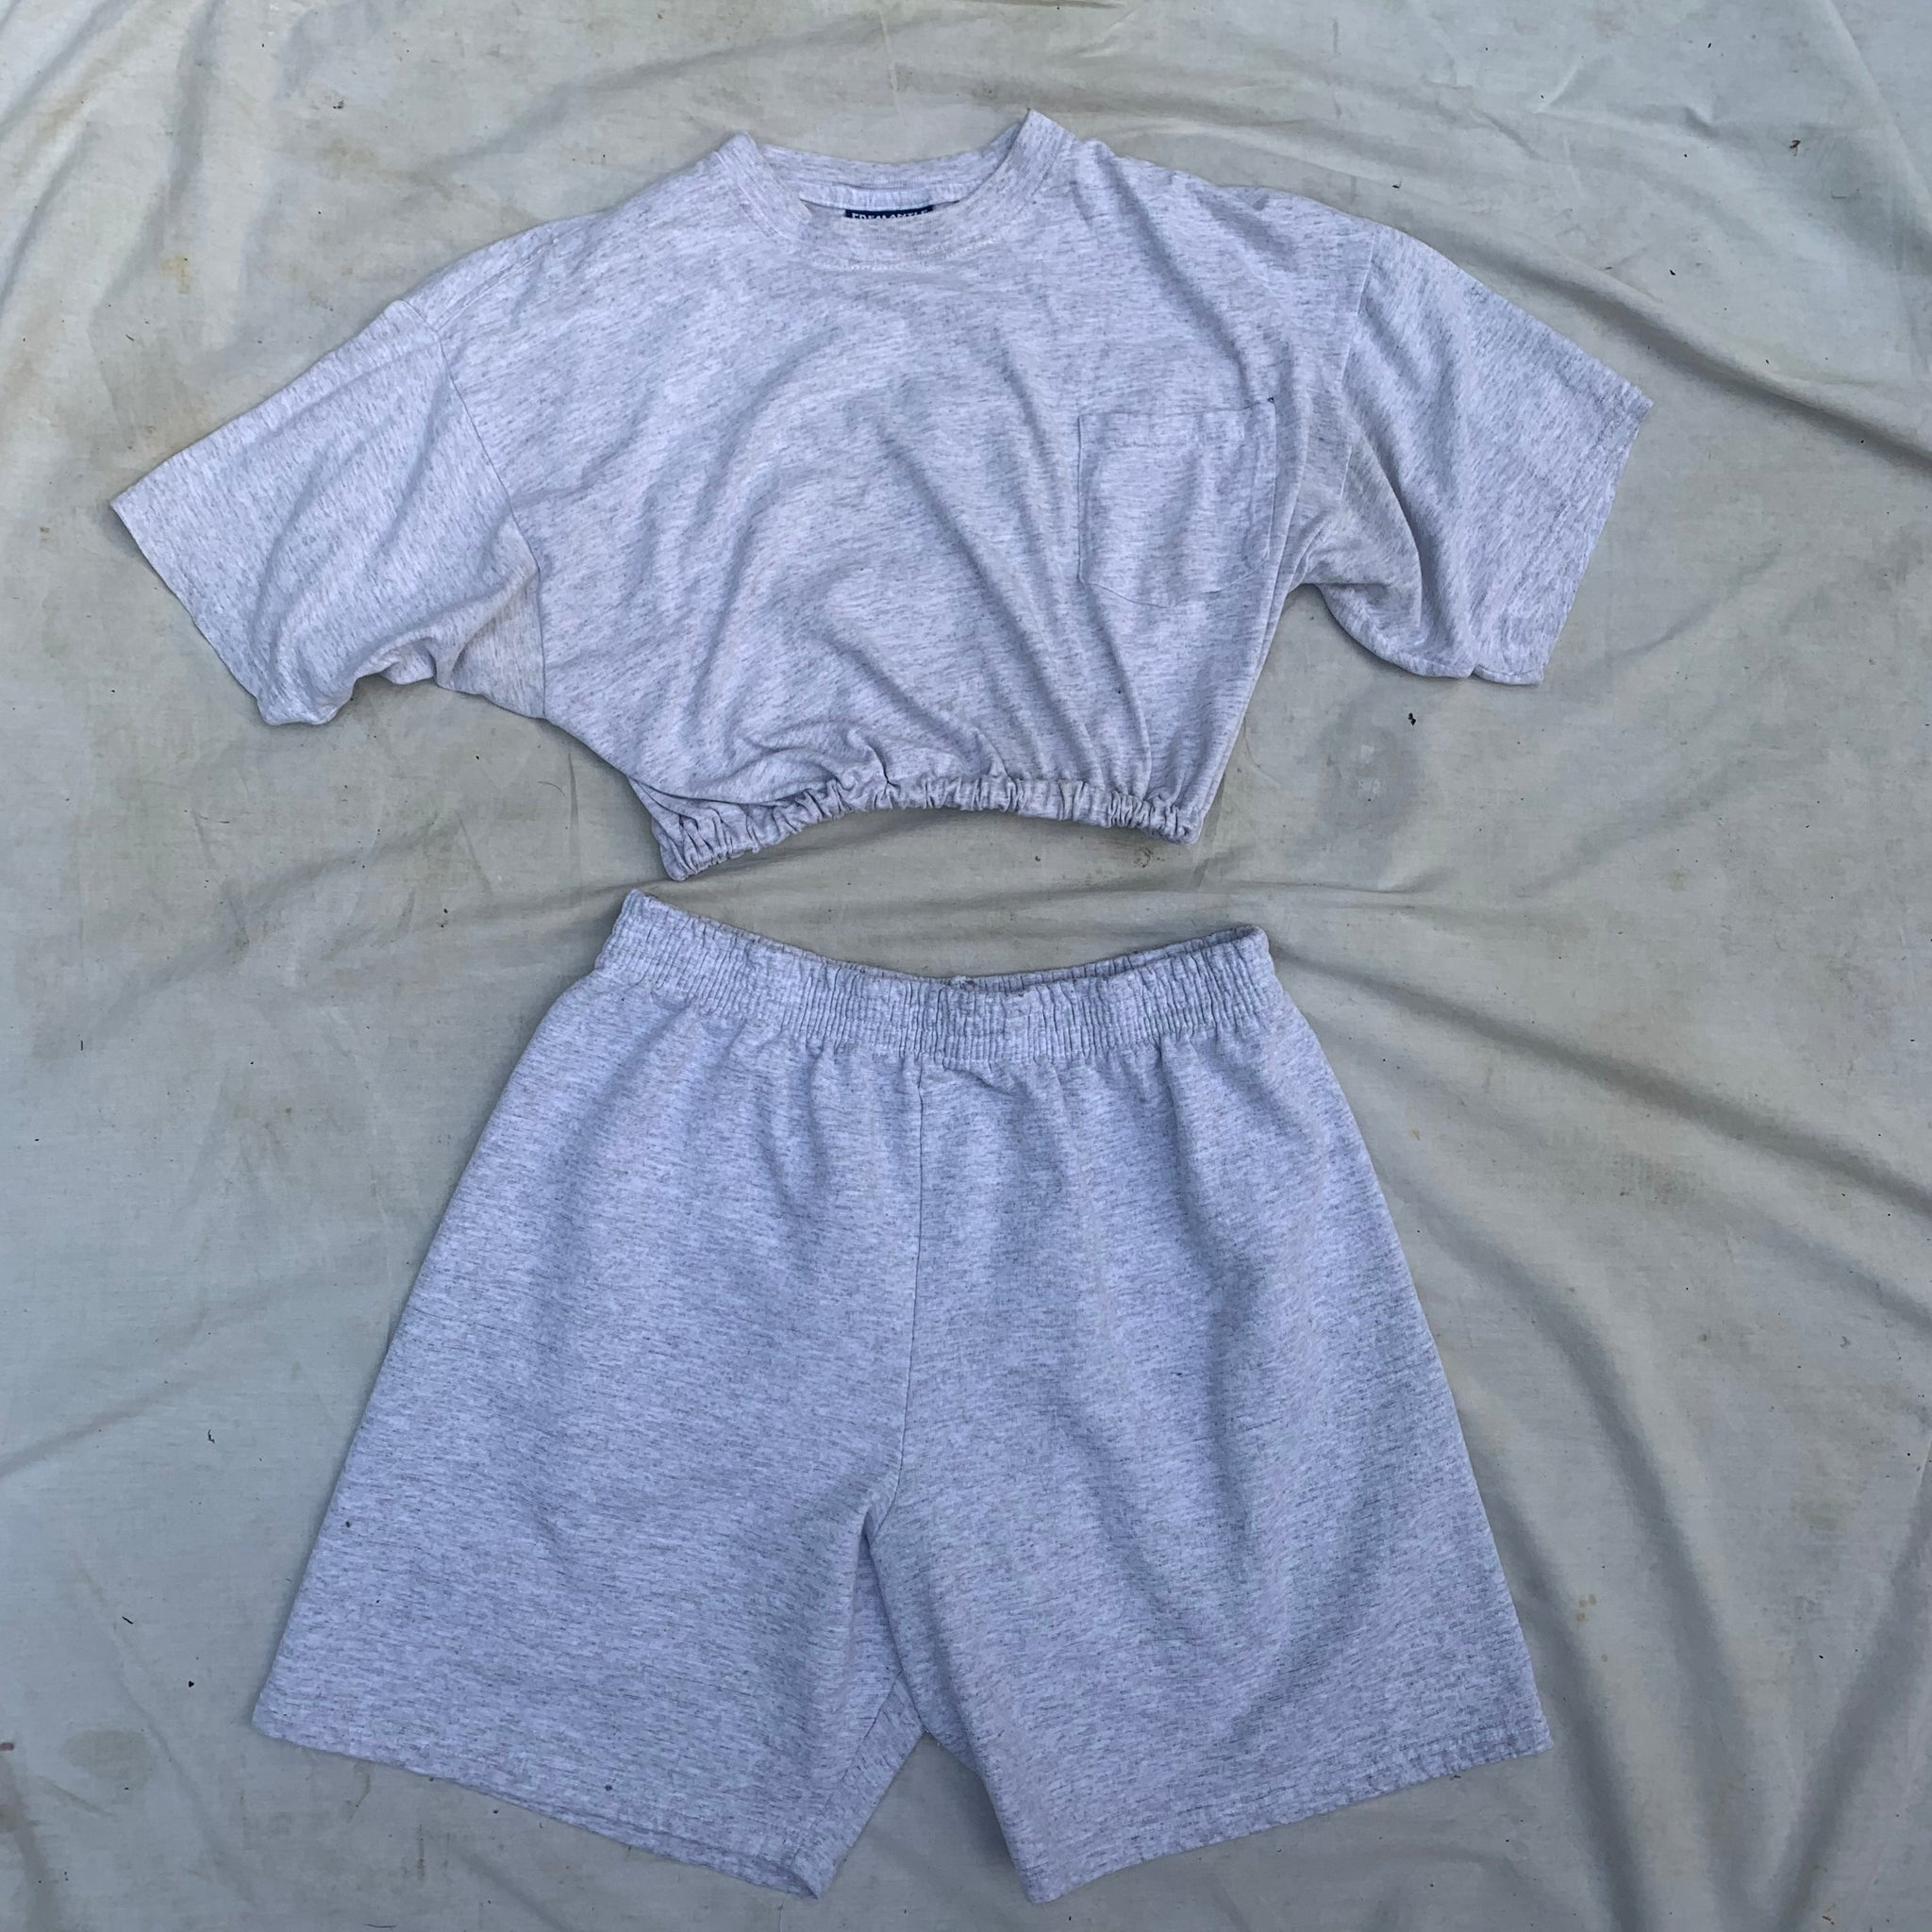 'Naya' Grey Reworked Scrunchie Tee + Sweat Shorts Co-Ord Set (M/L)